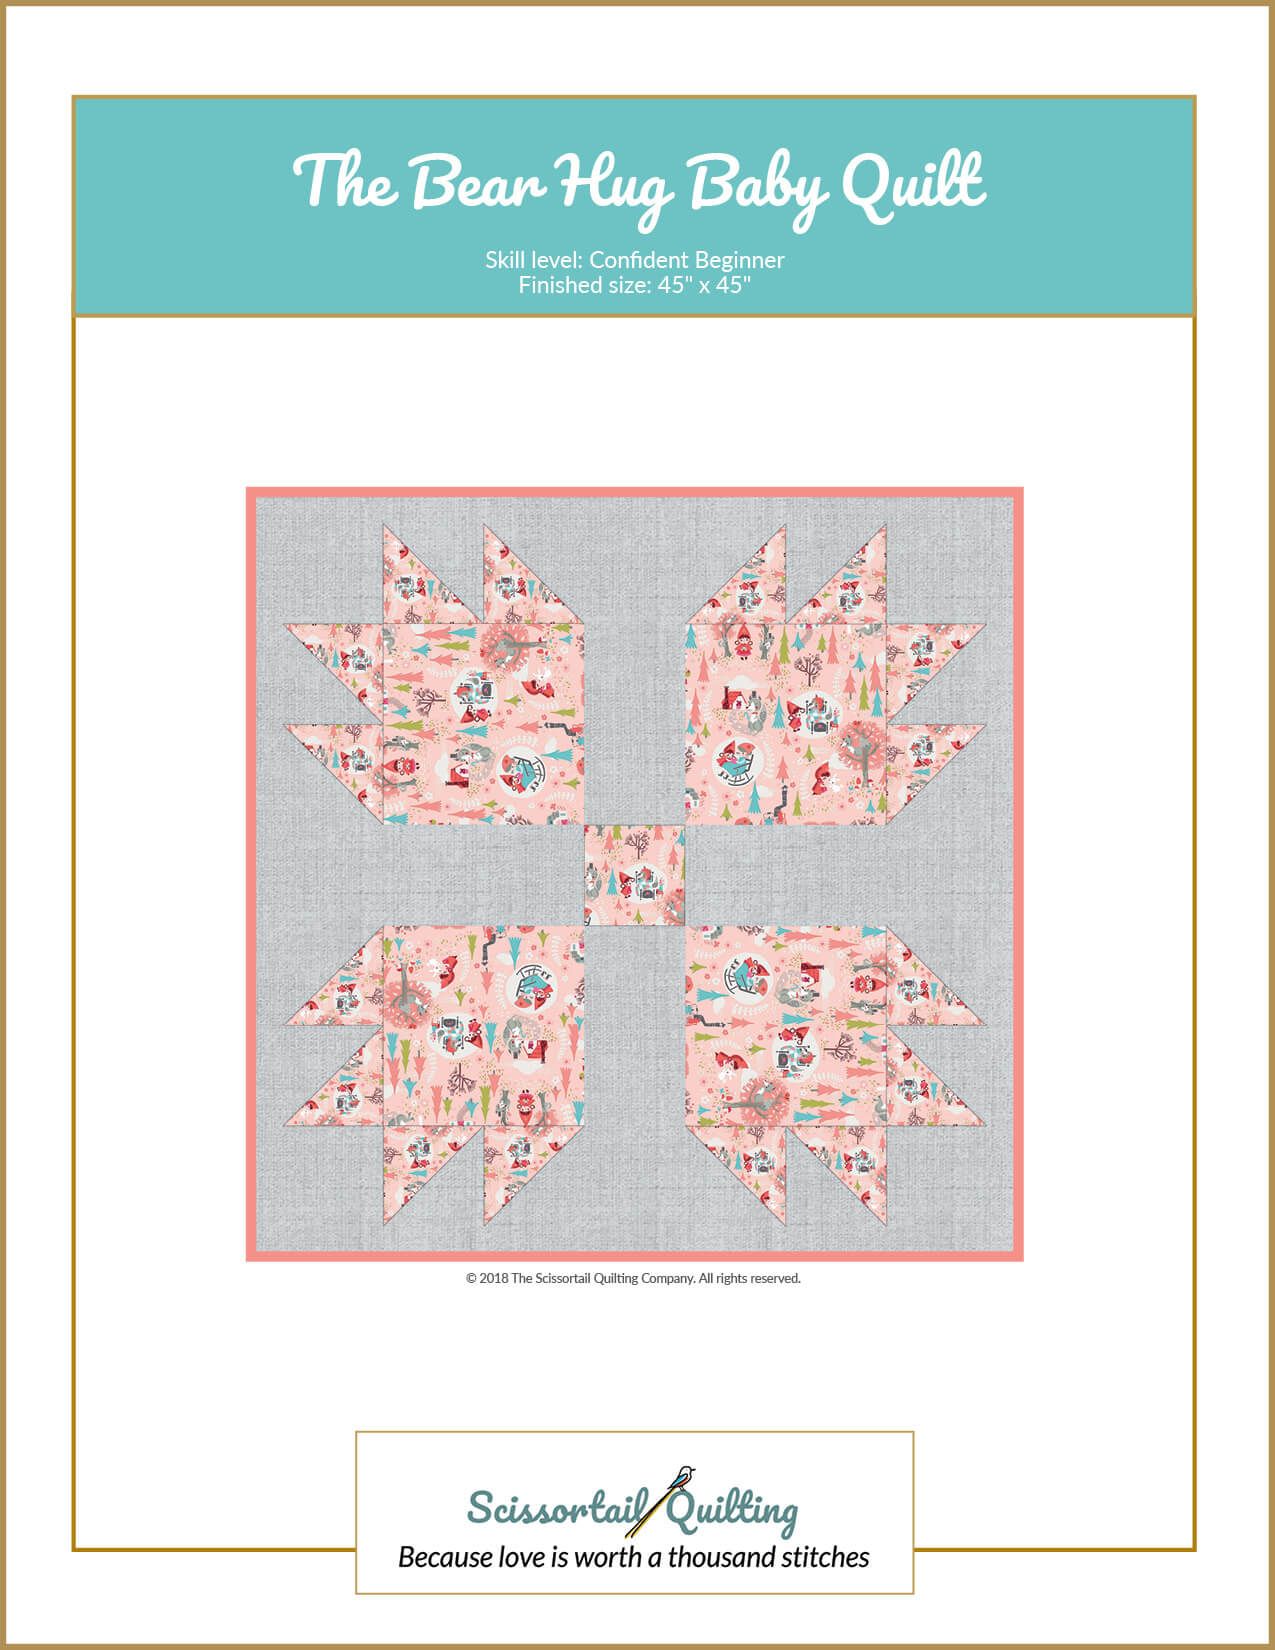 Image of cover for downloadable pattern named Bear Hug Baby Quilt